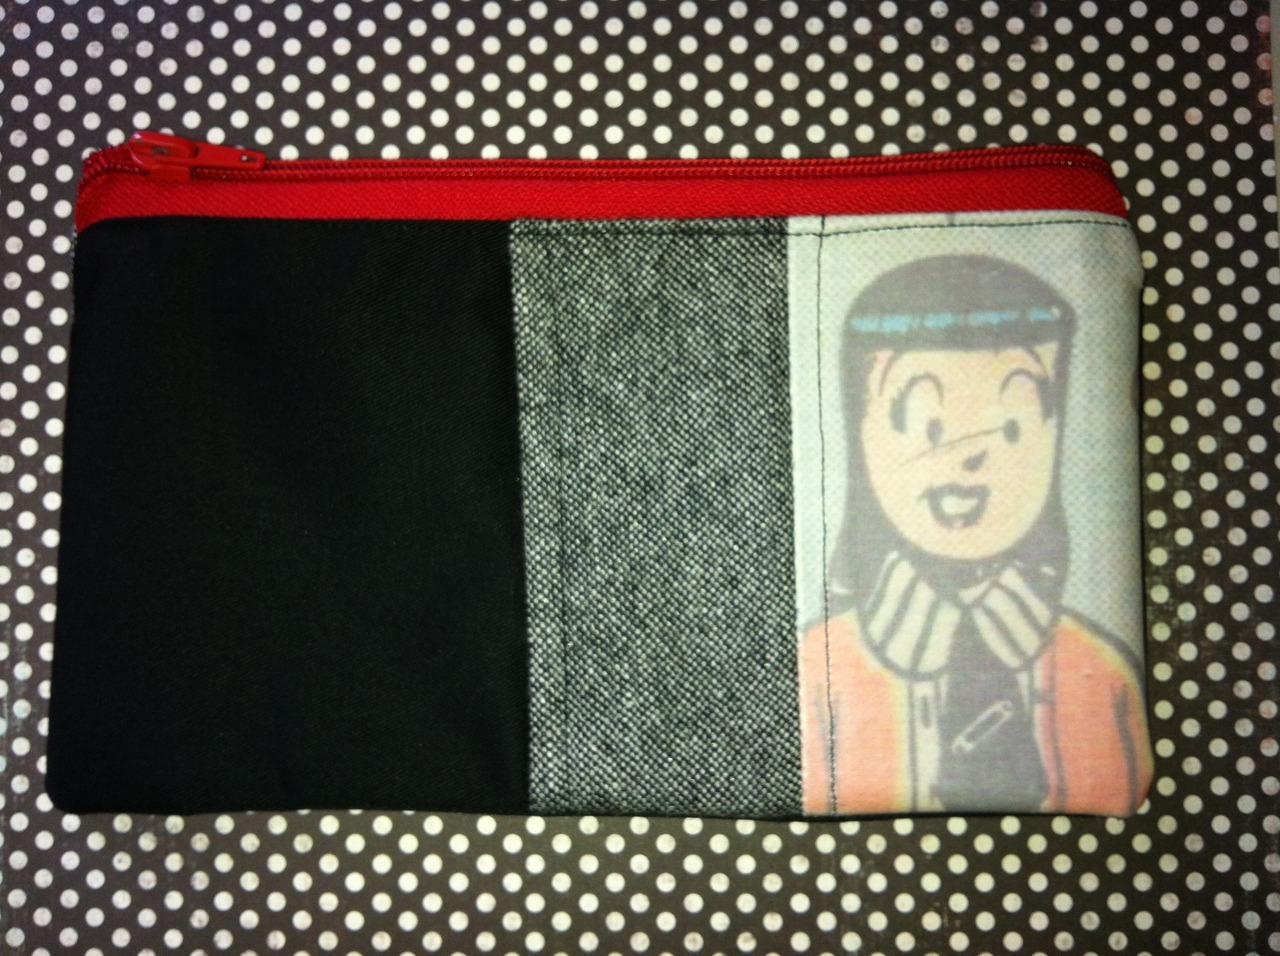 Warning!! Reckless Self Promotion!!! Making some little zippered pouches to sell online, attempting to make some money while looking for a job.  The images are taken from vintage Archie comics but I'm going to do others with various vintage images.